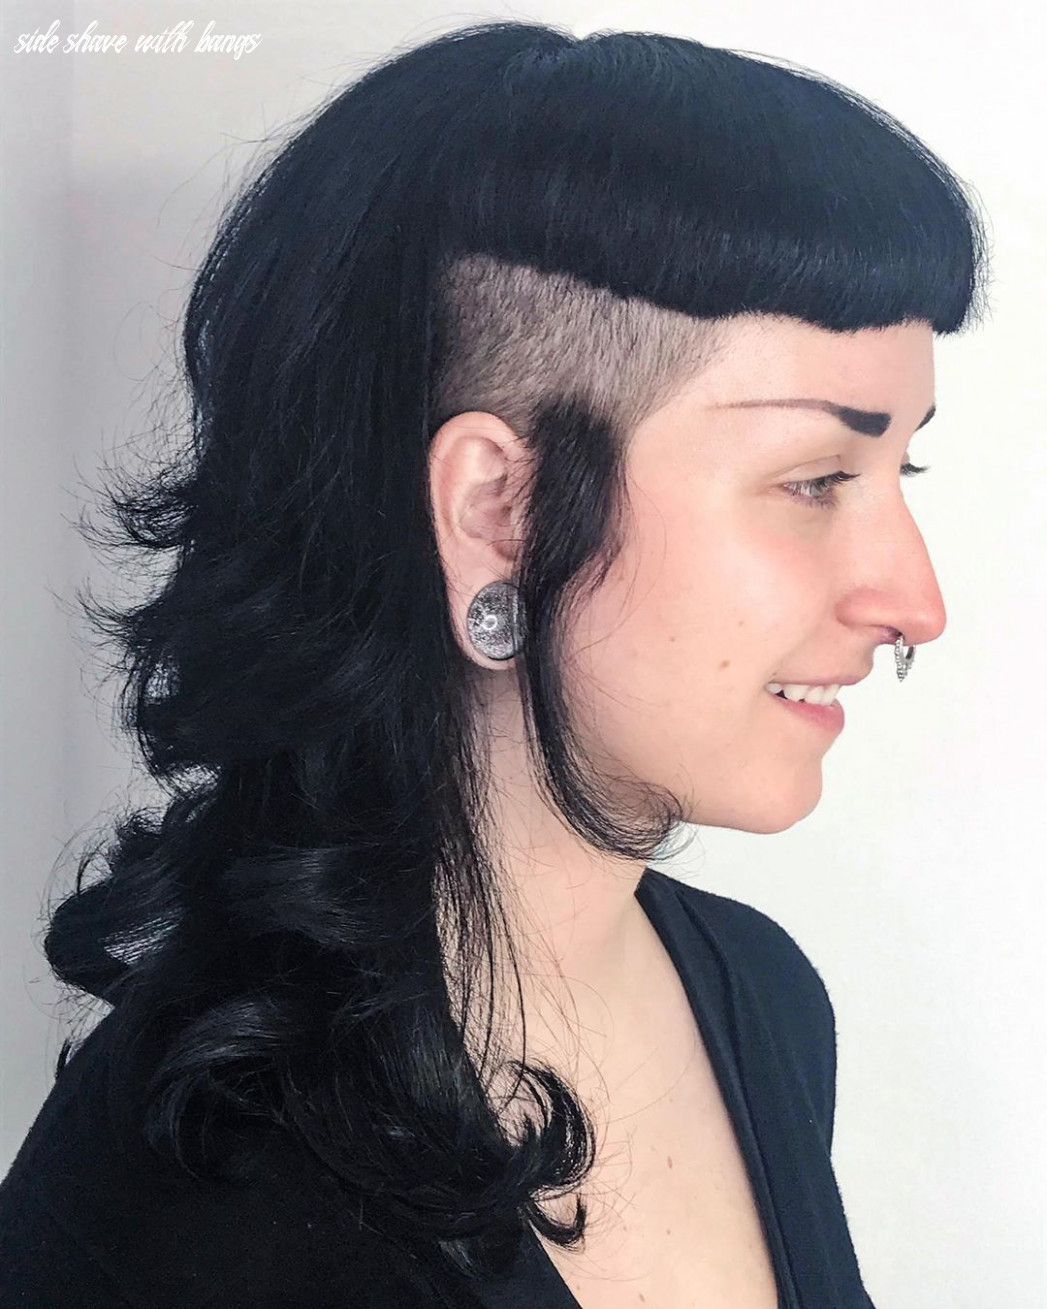 Pin on body mod & art loves side shave with bangs